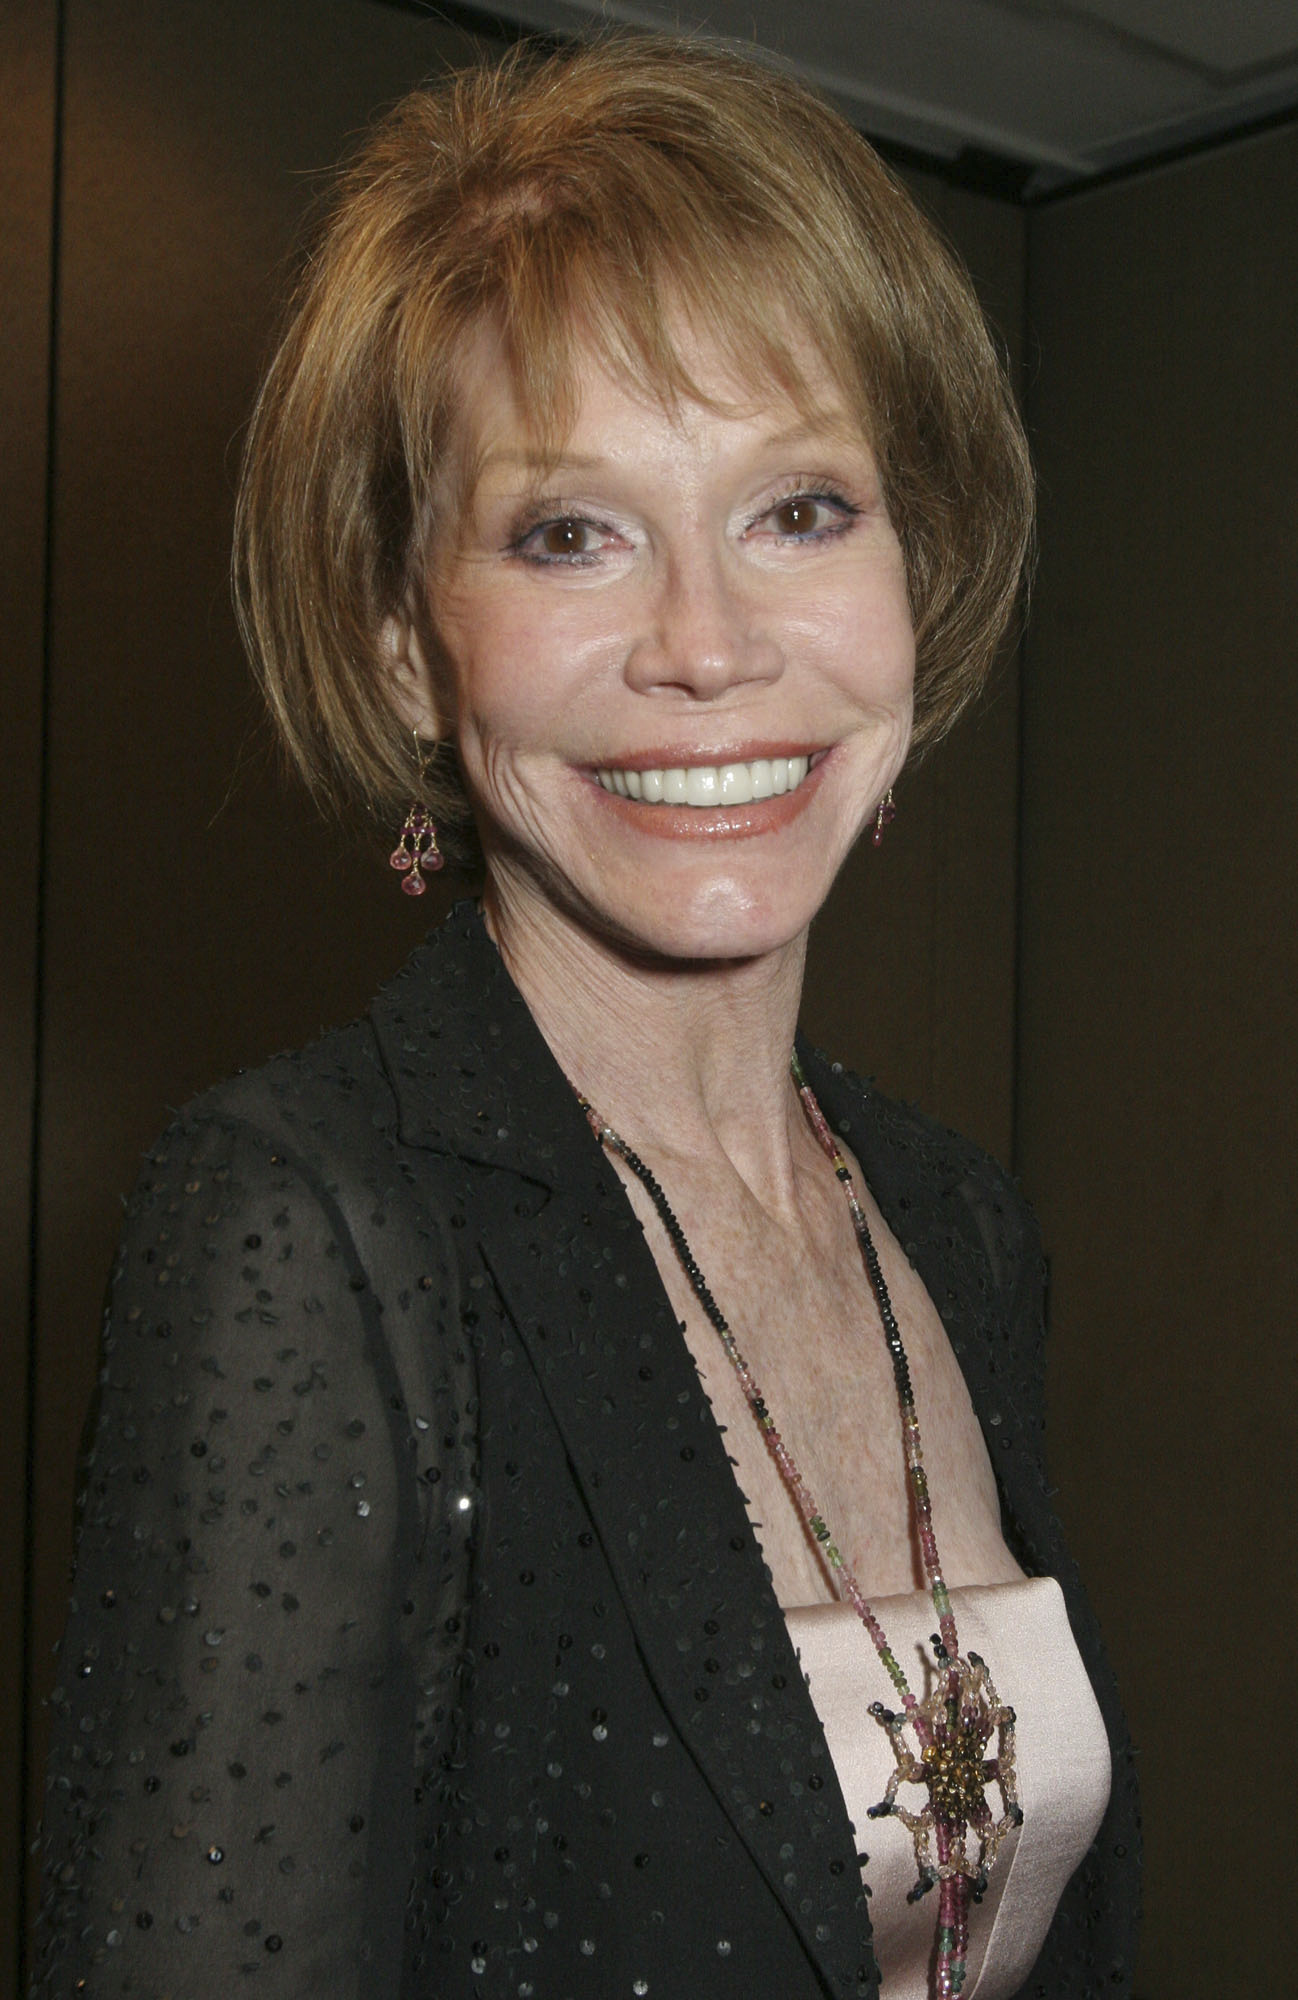 CORRECTS DATE OF PHOTO TO 2005  FILE - This Sept. 19, 2005, file photo shows Mary Tyler Moore at the 26th Annual News and Documentary Emmy Awards ceremony in New York. Moore died Wednesday, Jan. 25, 2017, at age 80. (AP Photo/Tina Fineberg, File)